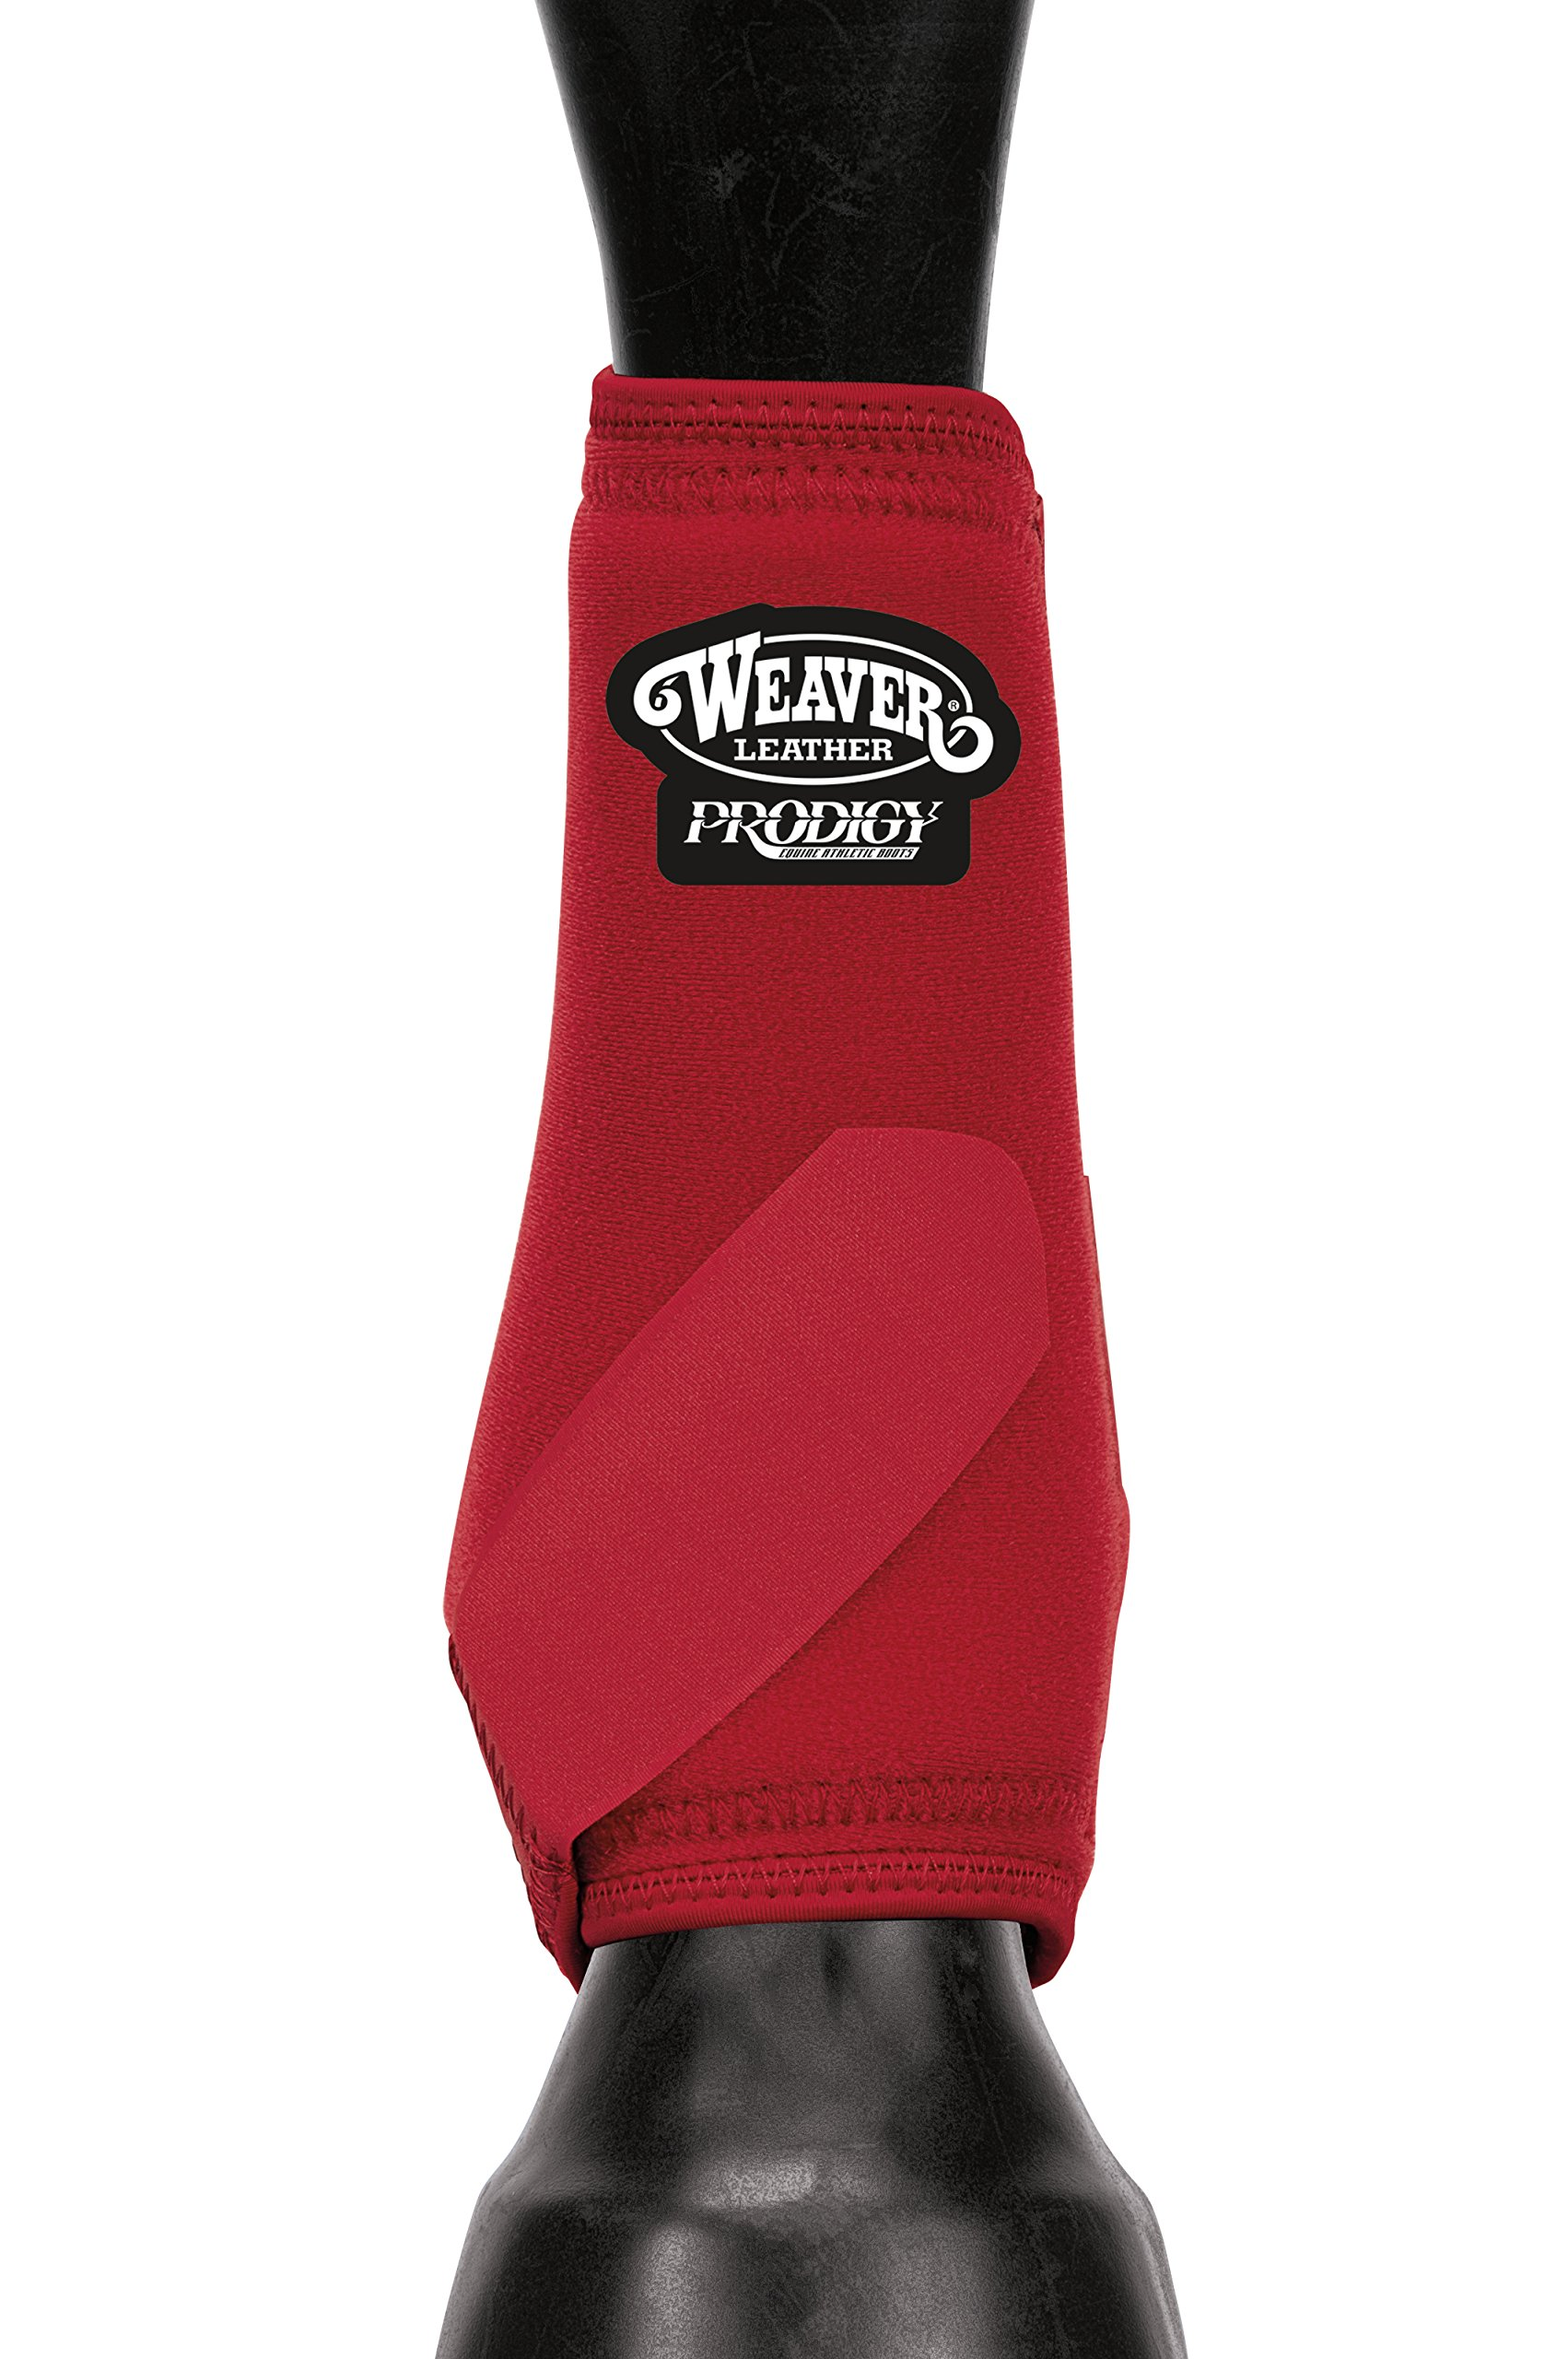 Weaver Leather Prodigy Athletic Boots